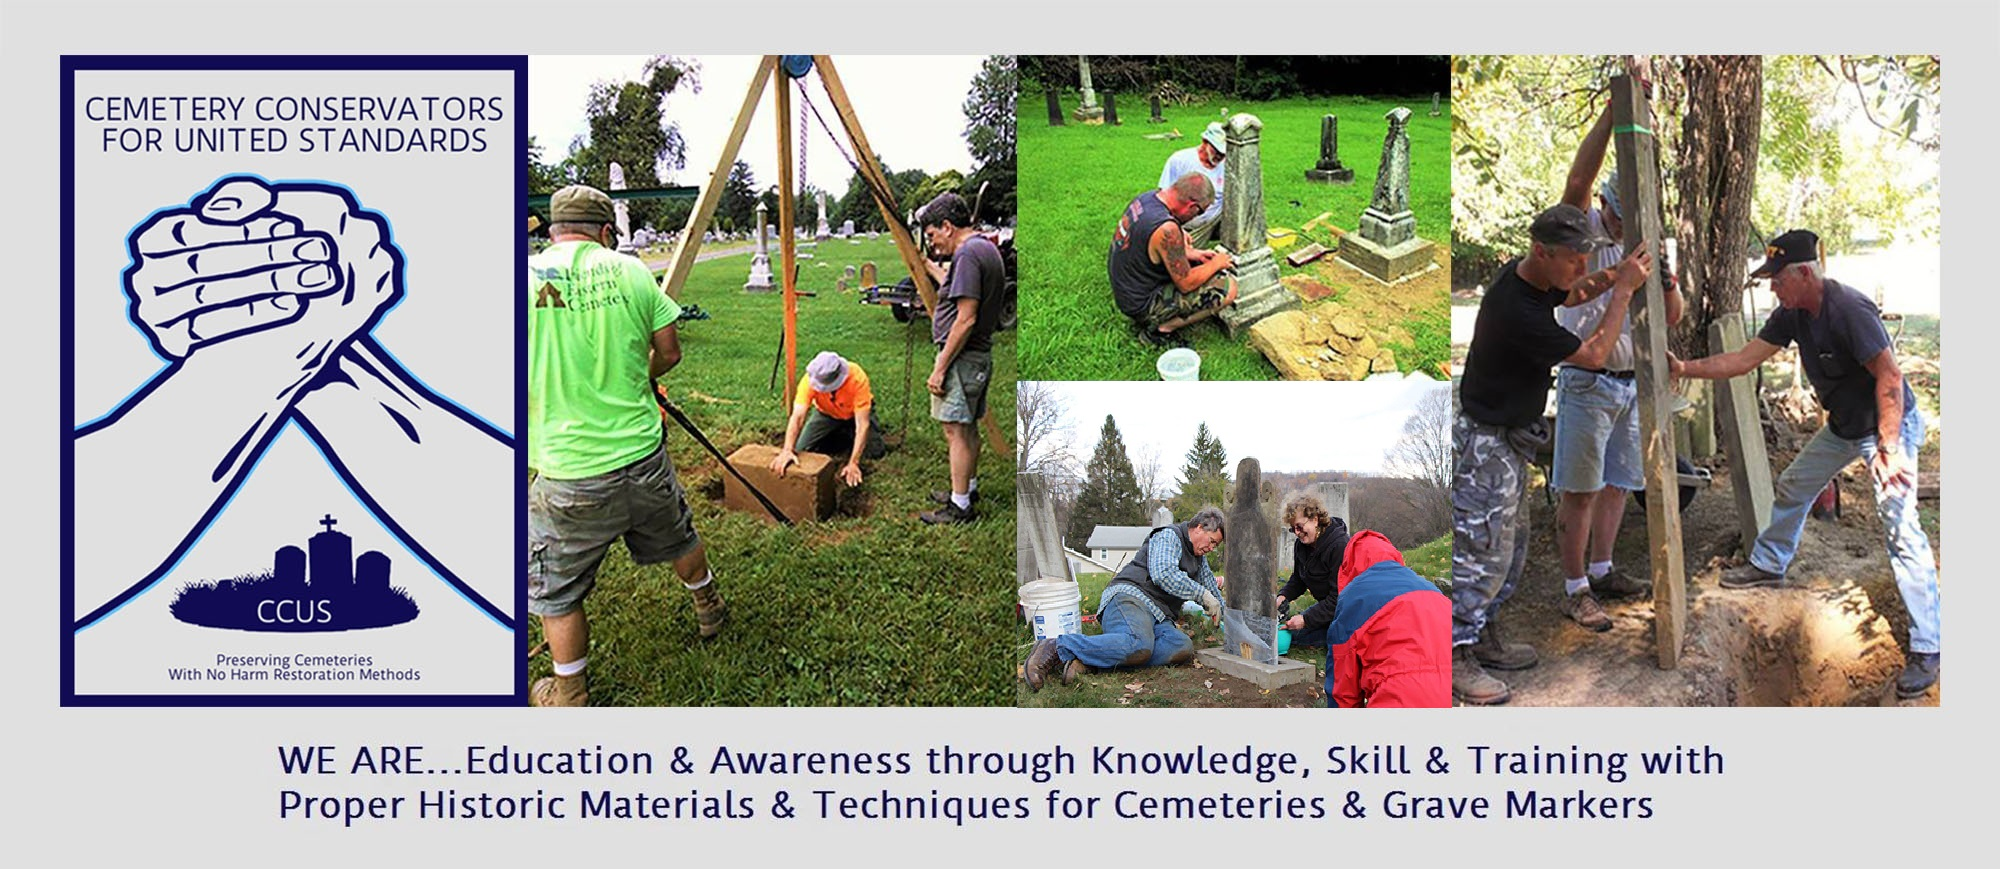 Cemetery Conservators for United Standards